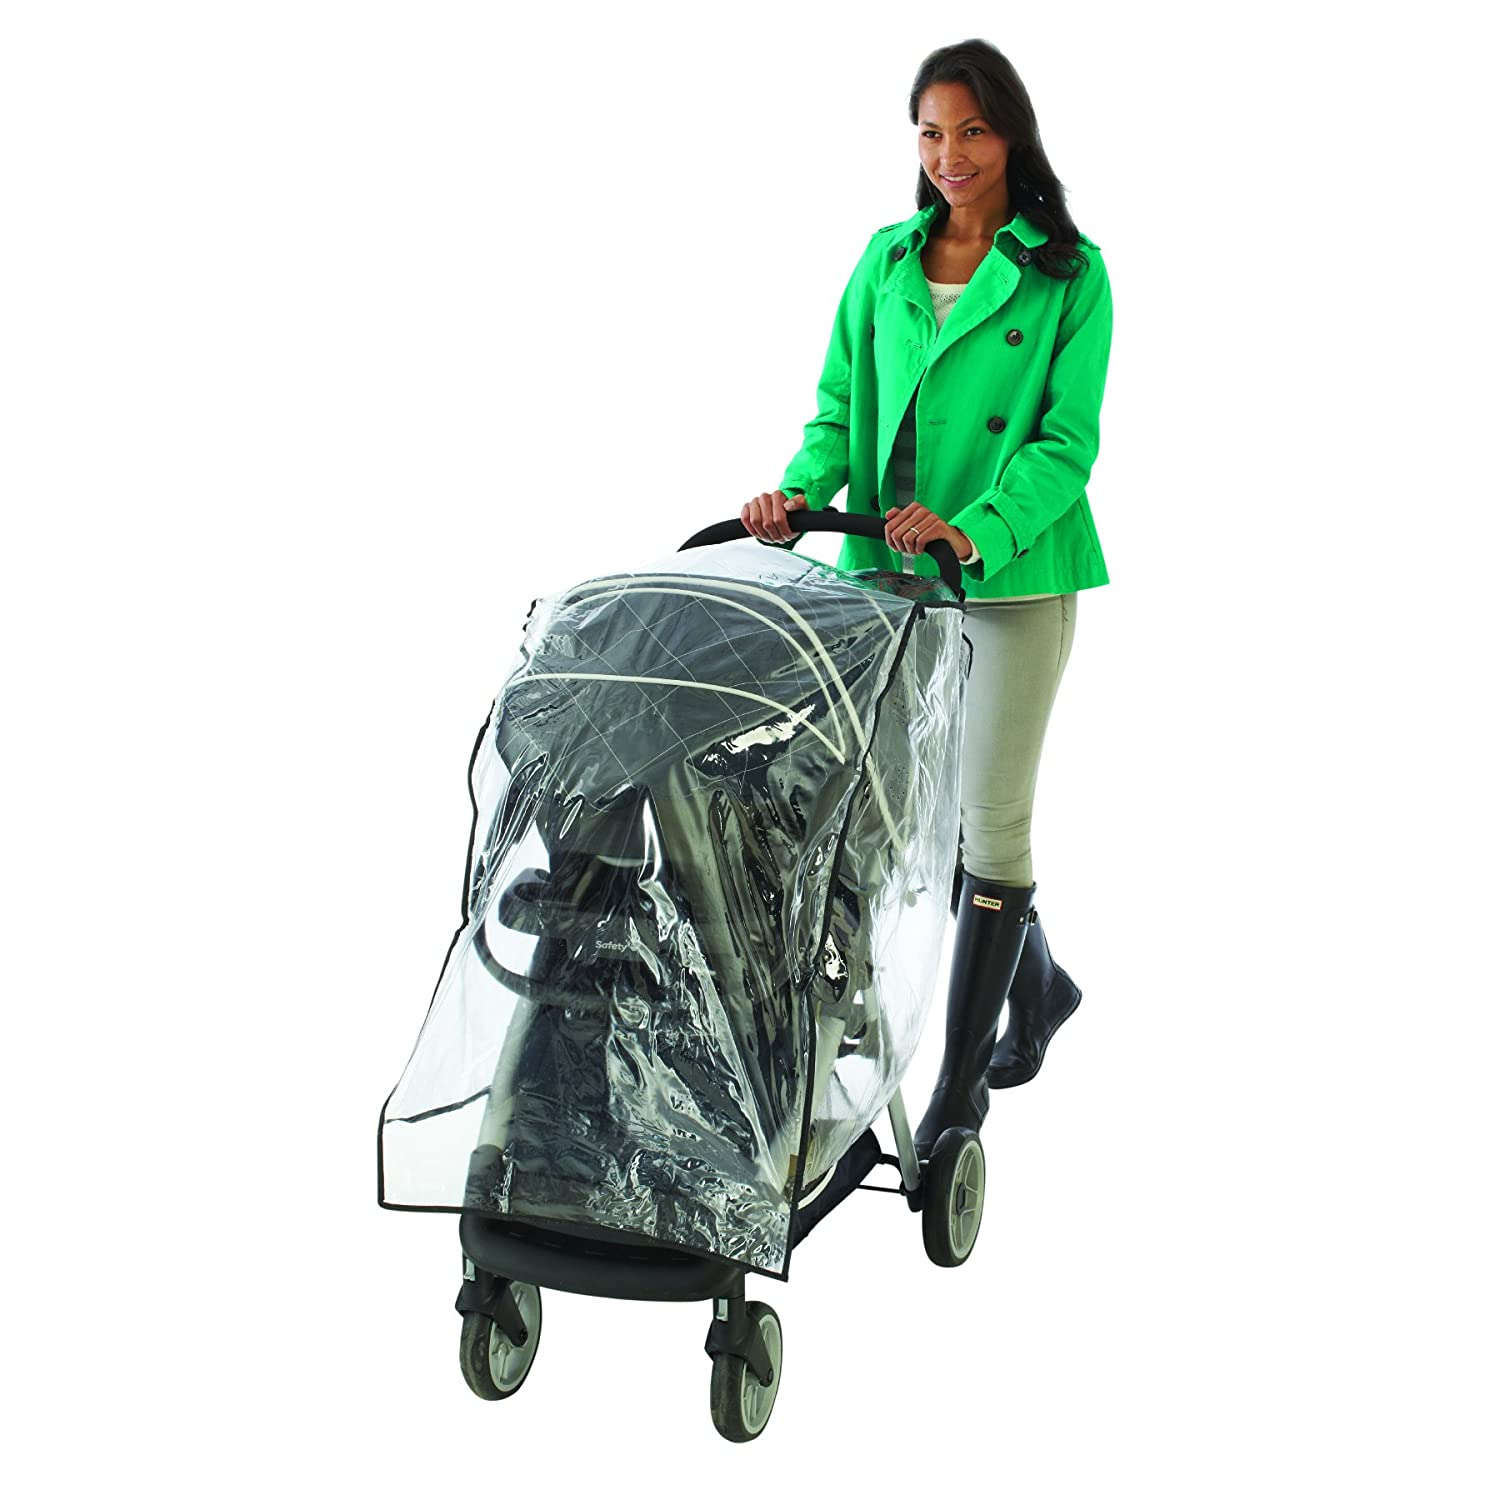 Nuby Travel System Weather Shield, Clear 120012